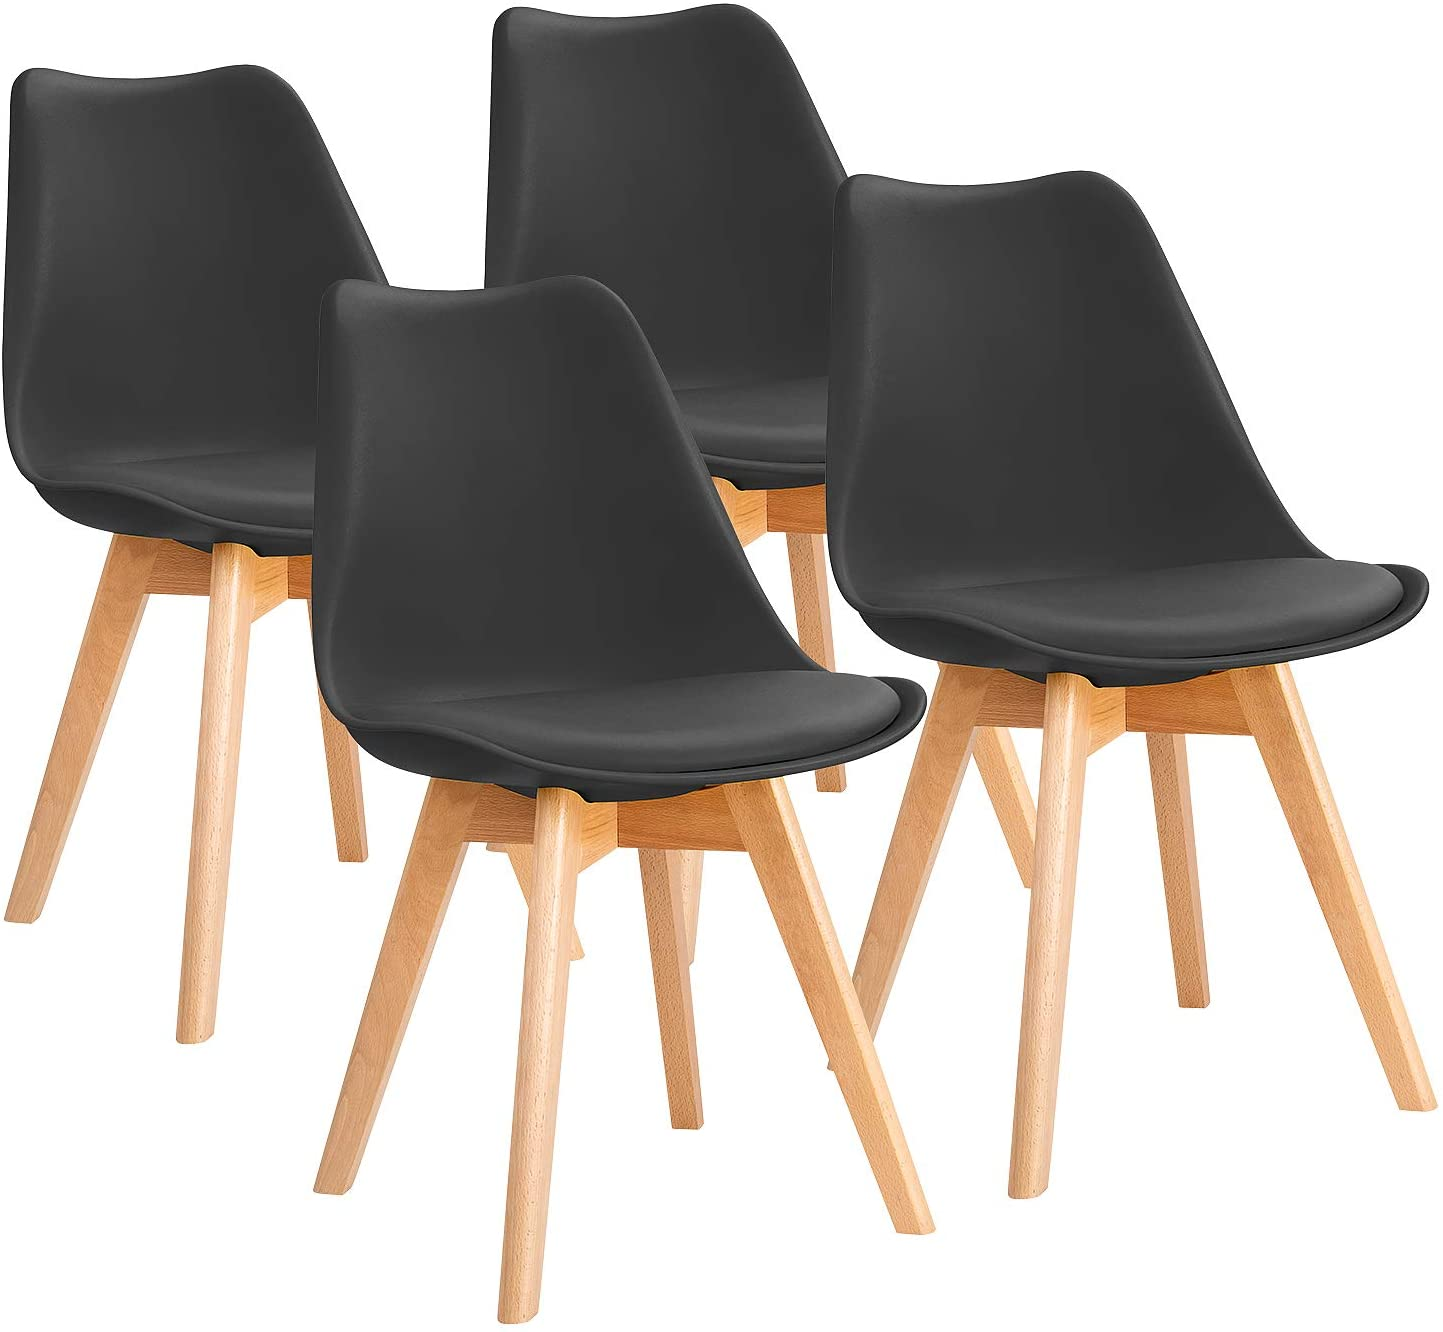 Furniwell Dining Chairs Mid Century Modern DSW Chair Upholstered Side Kitchen Chairs with Wood Leg and Soft Padded Cushion Shell Tulip Chairs For Kitchen, Dining, Bedroom, Living Room Set of 4 Black